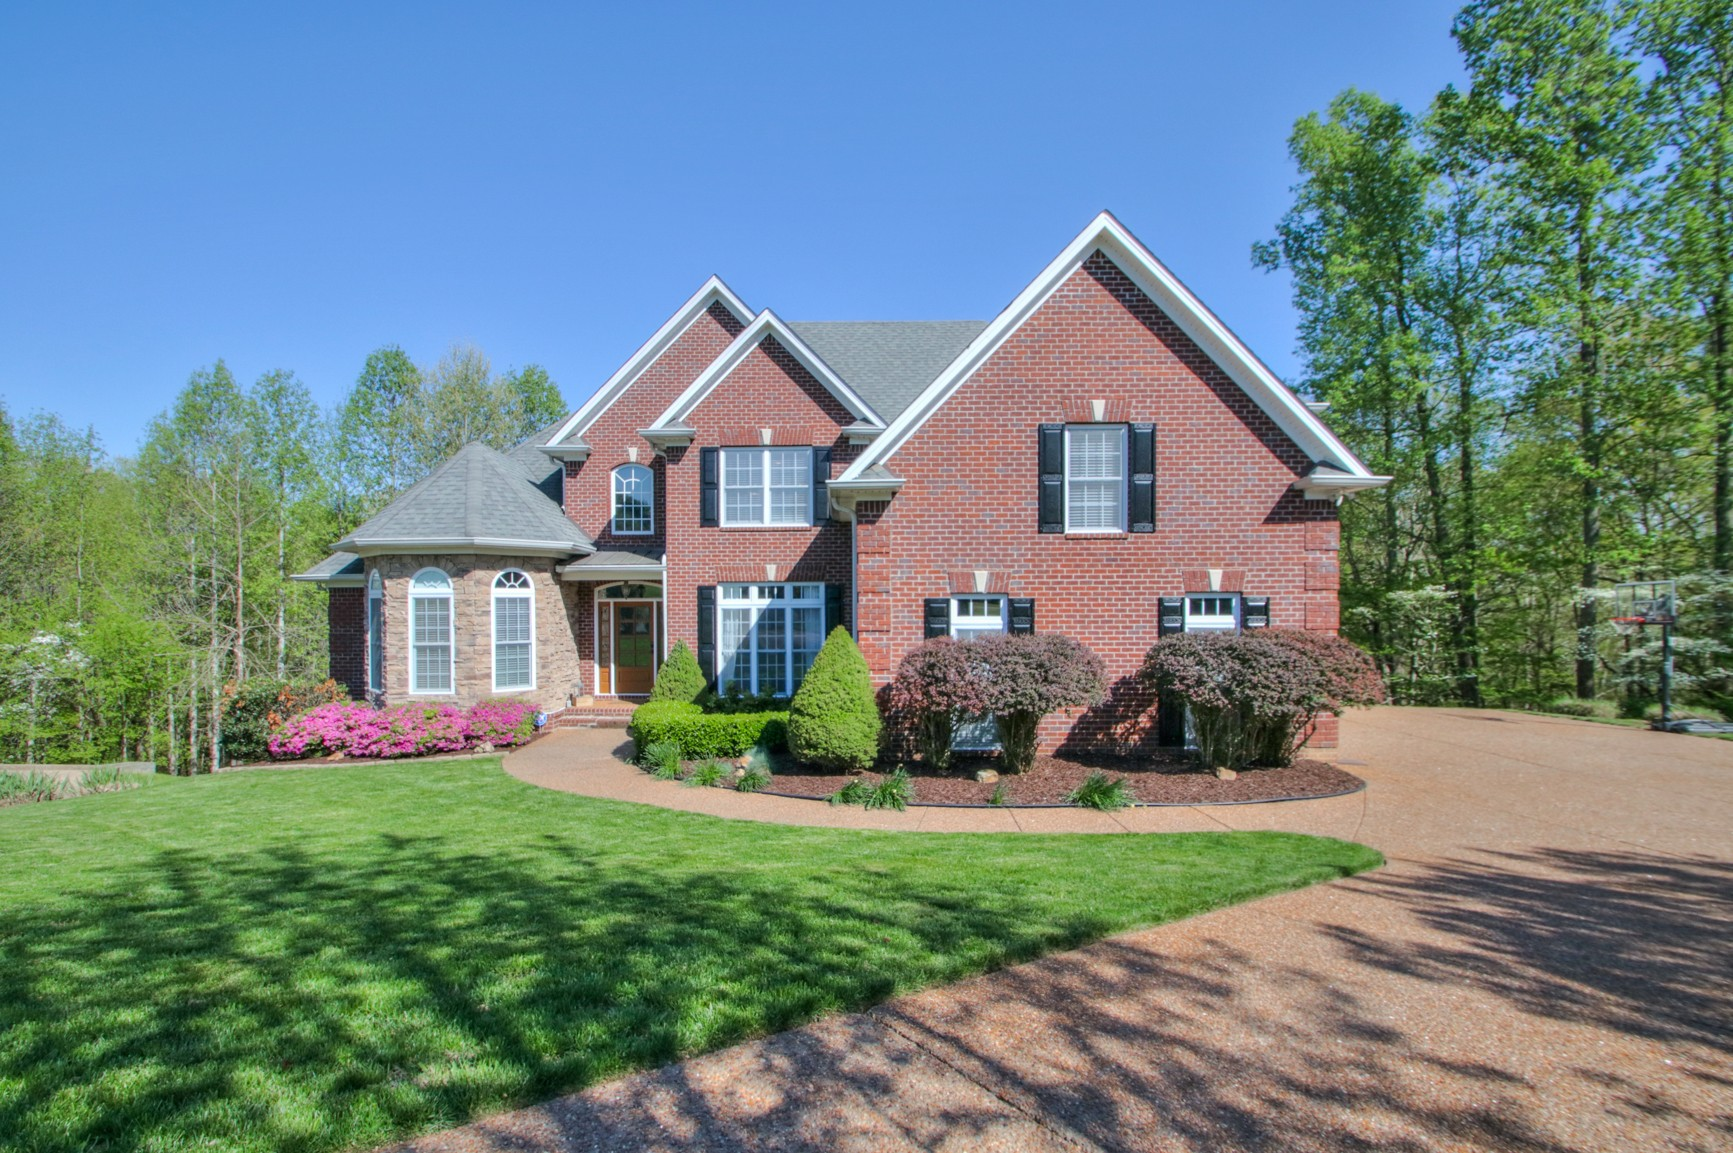 7120 Pleasant Grove Ct Property Photo - Fairview, TN real estate listing